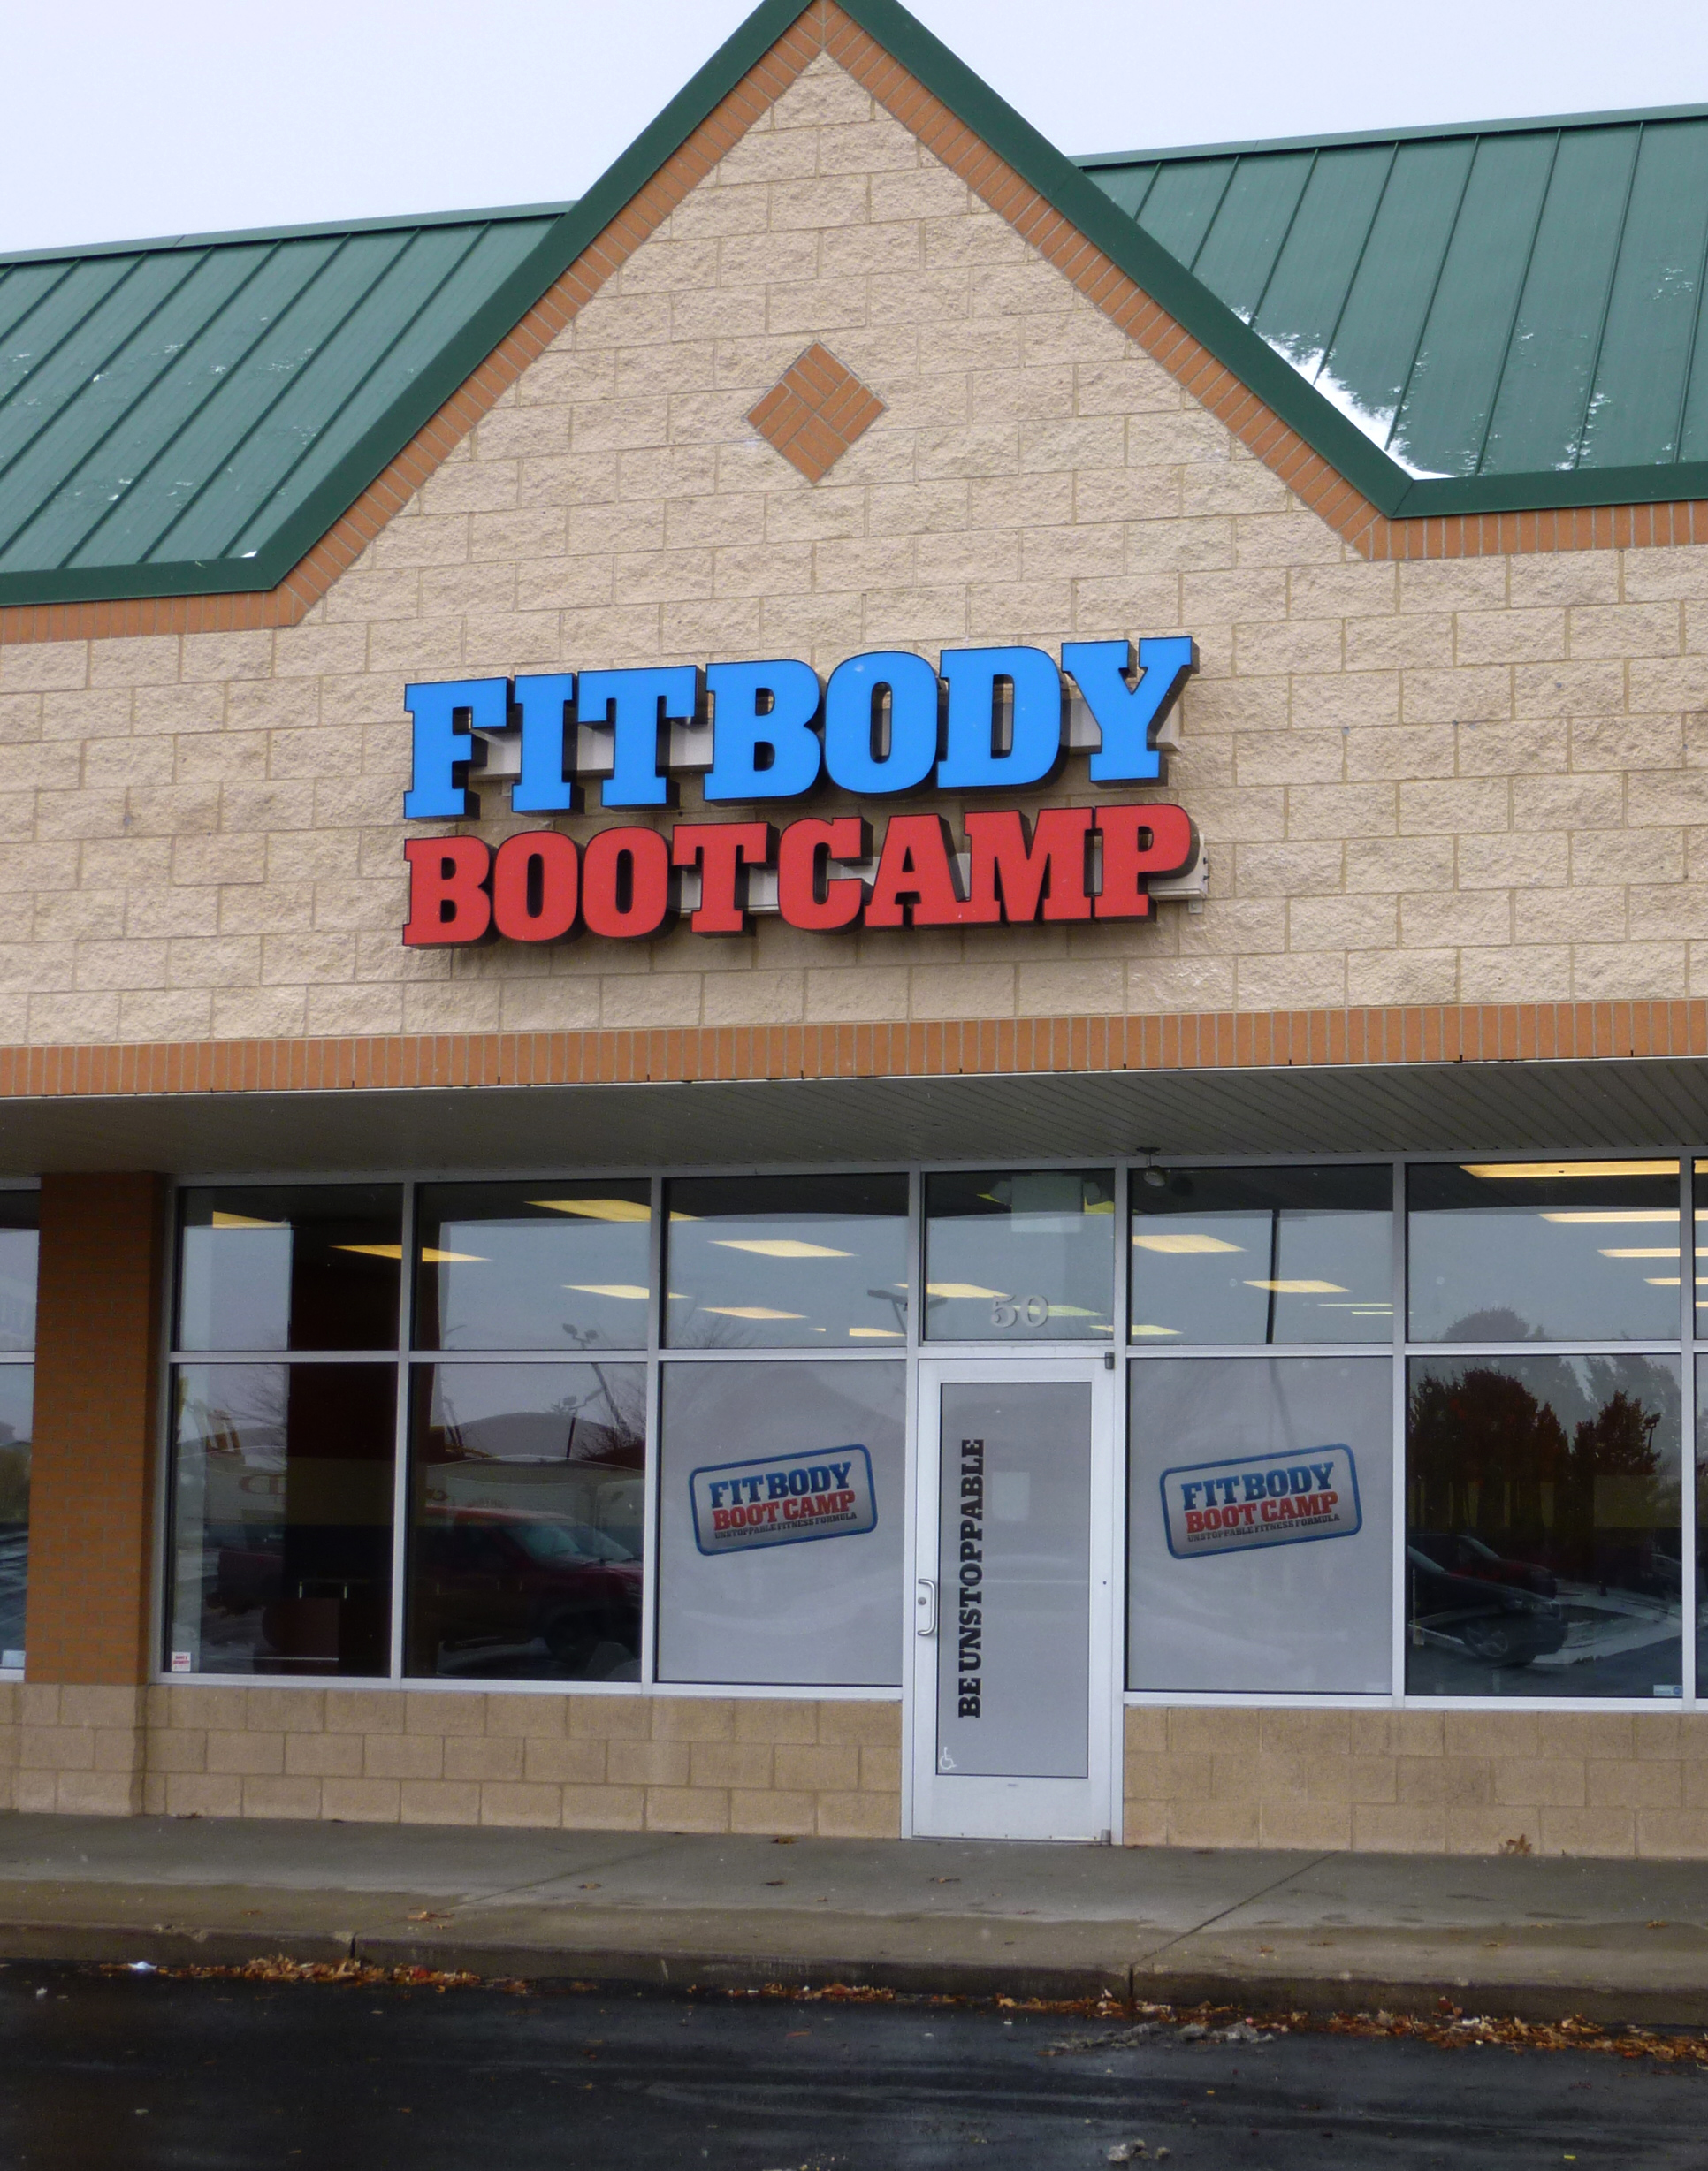 FIT BODY BOOT CAMP - CHANNEL LETTERS WITH LED ILLUMINATION ON A RACEWAY